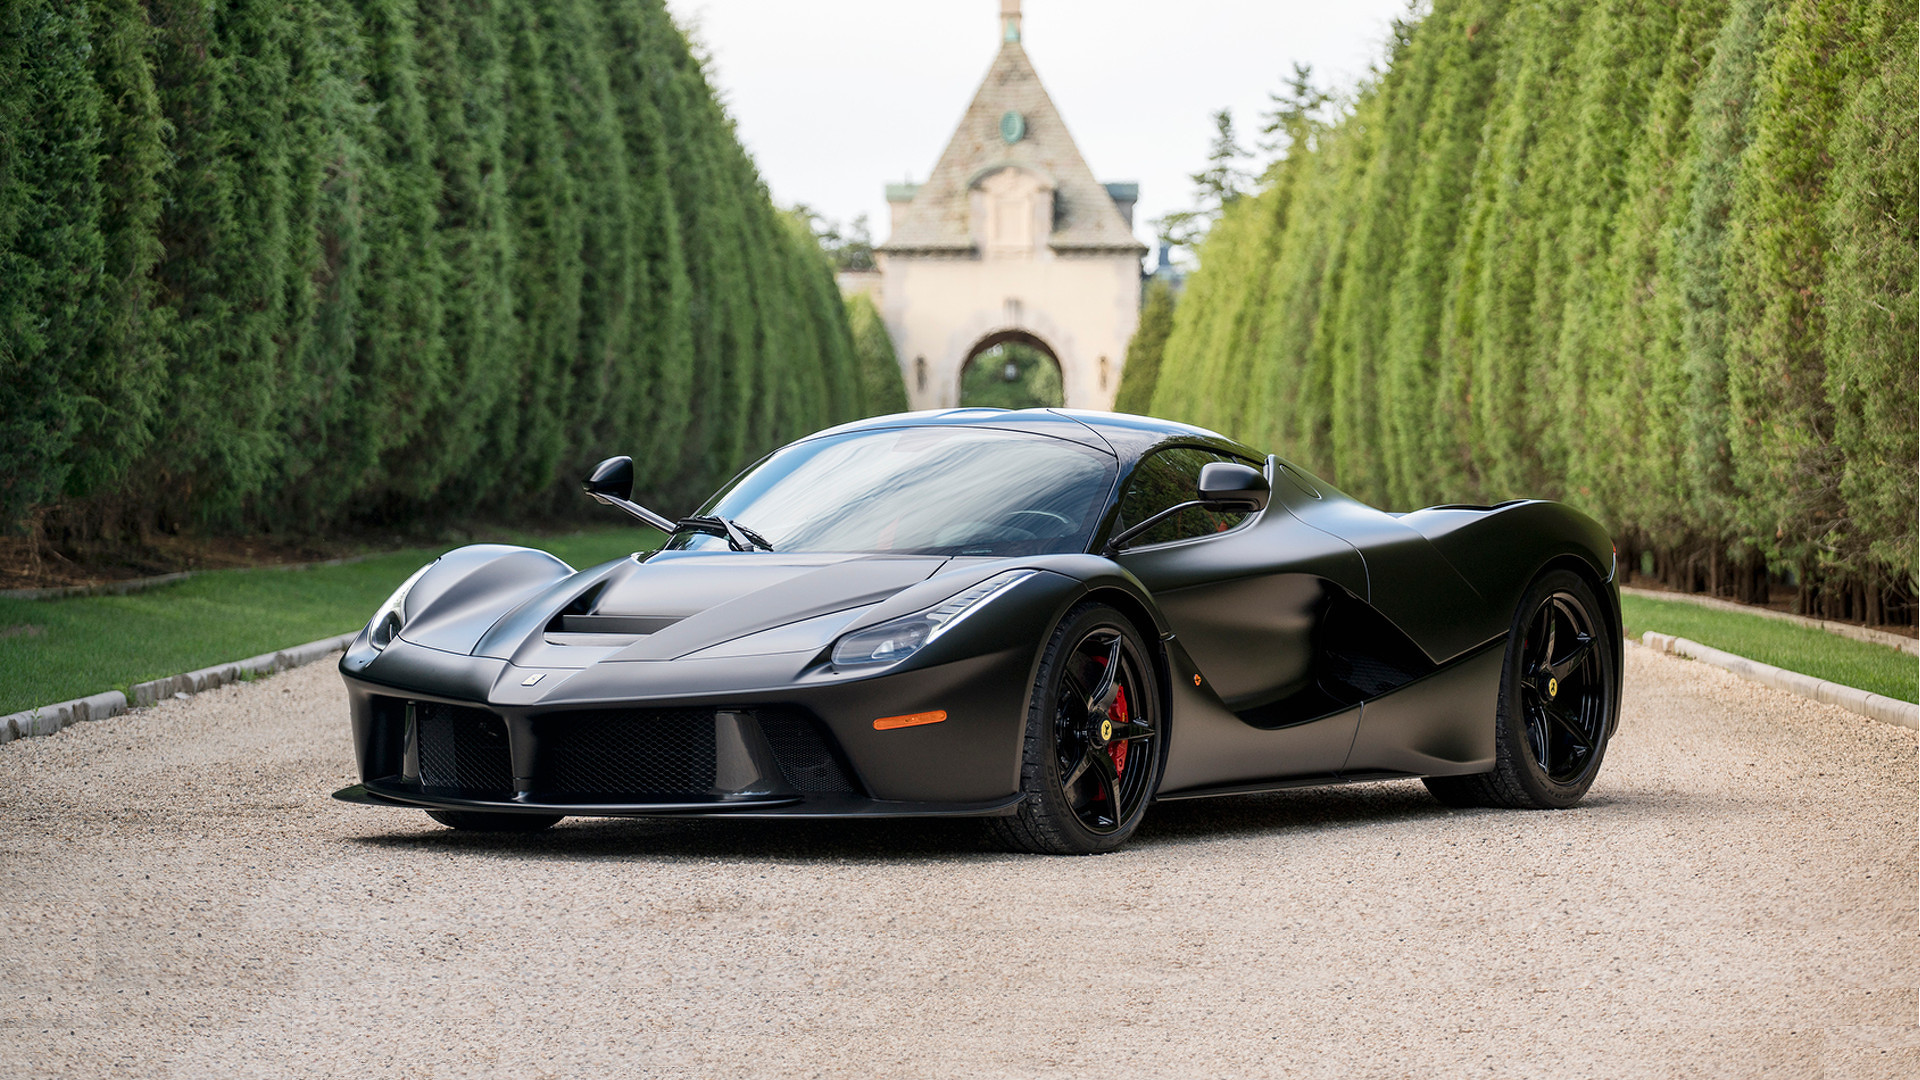 Matte black LaFerrari 'horse from ' sells for $4.7M at auction